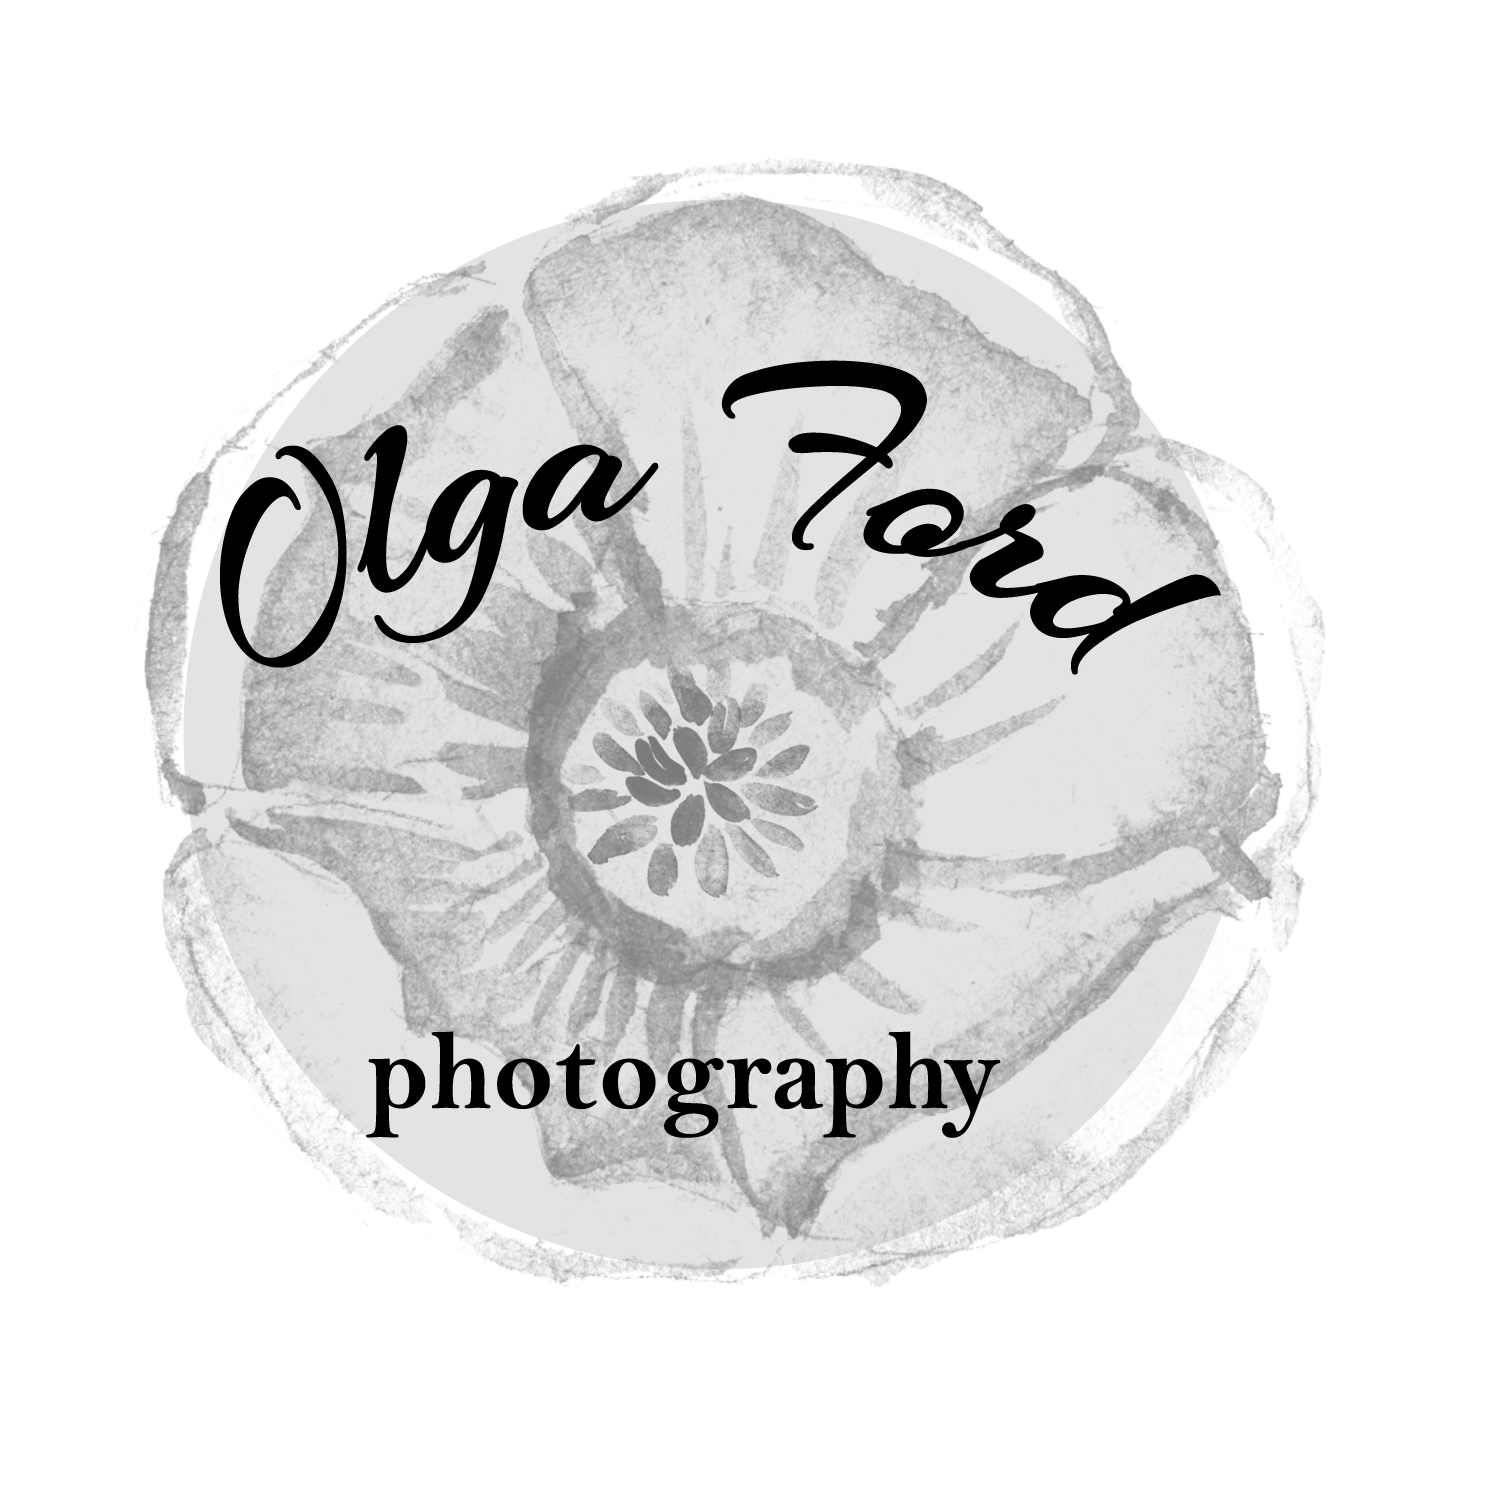 Olga Ford Photography